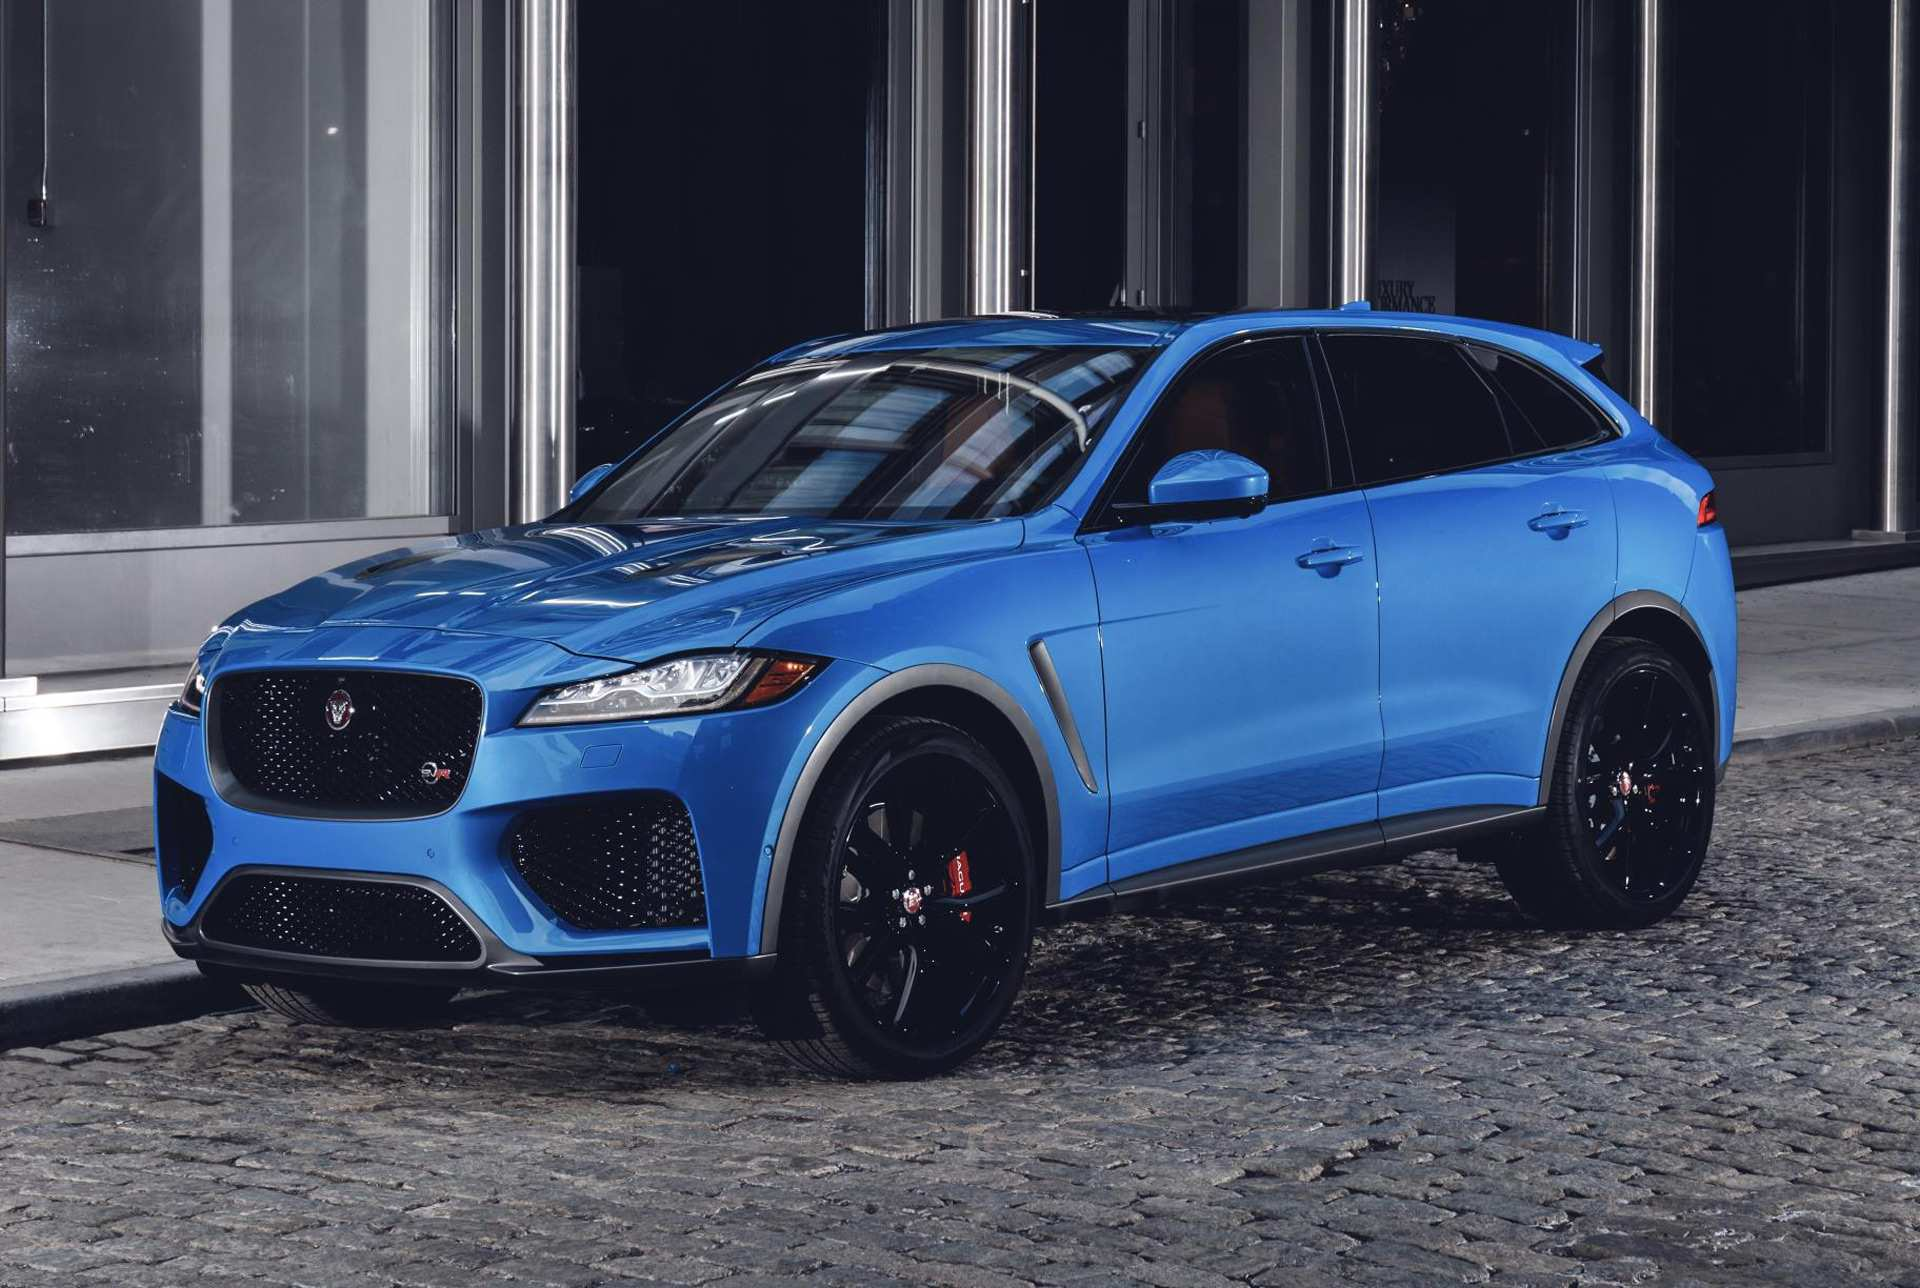 42 Gallery of Jaguar Suv 2019 Wallpaper by Jaguar Suv 2019